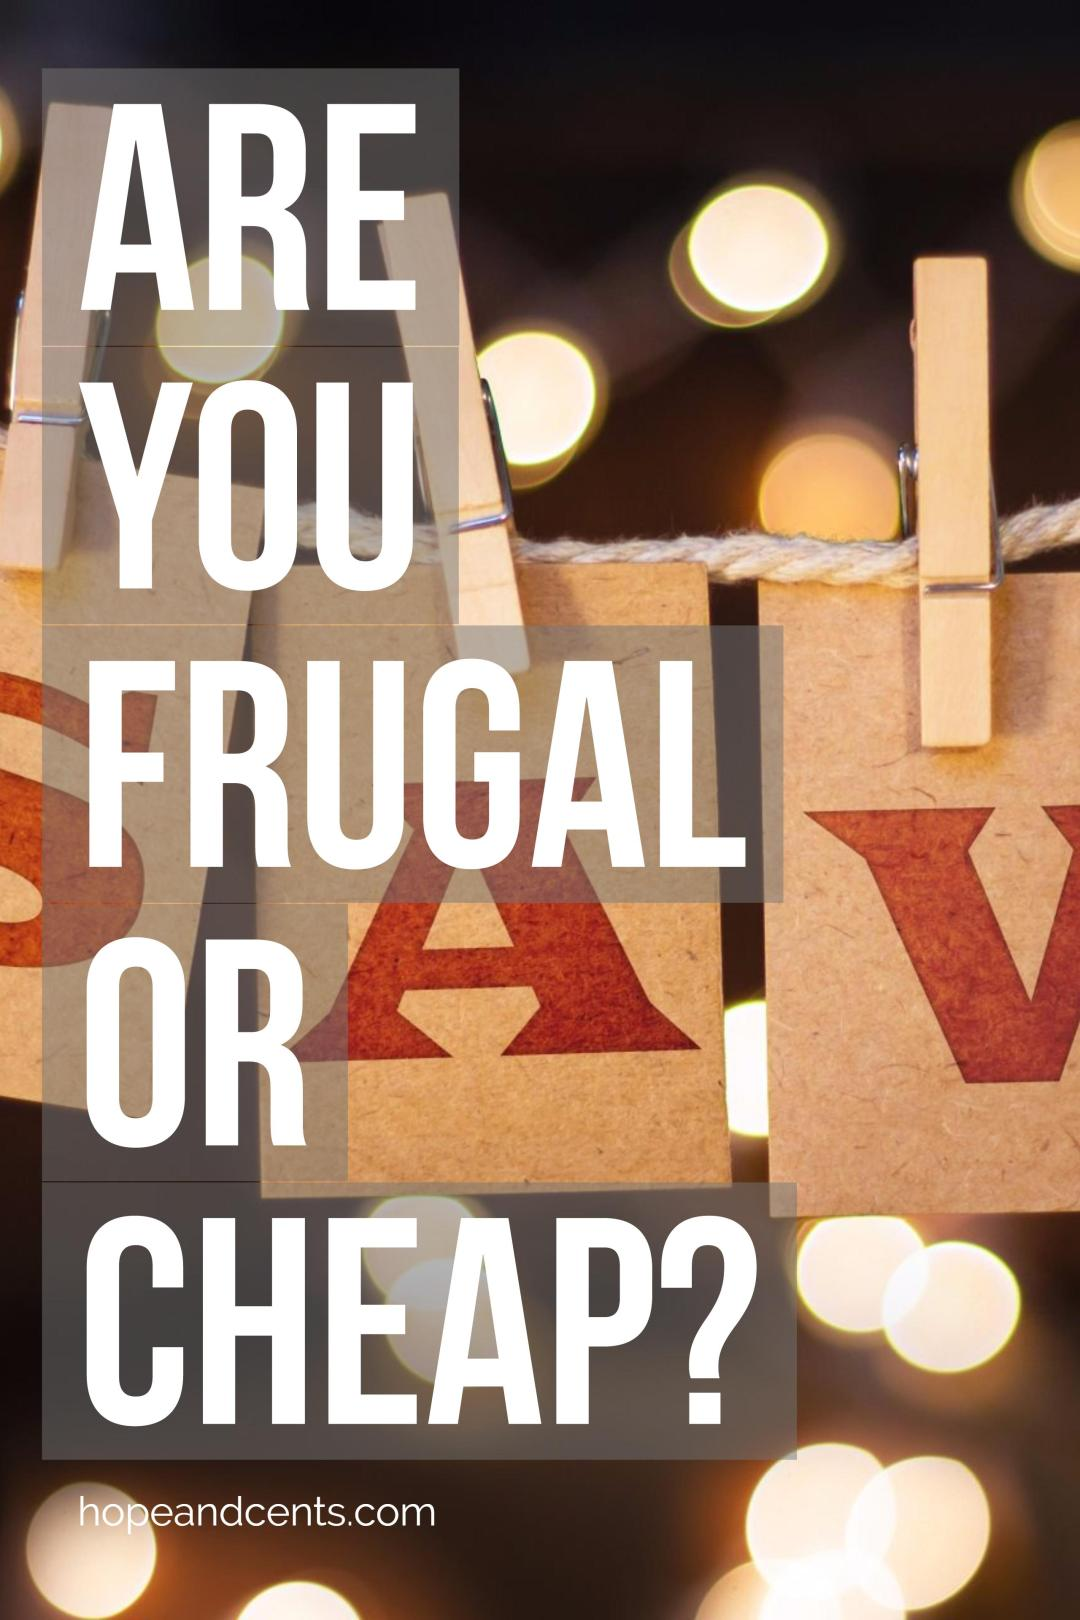 Are You Frugal or Cheap?